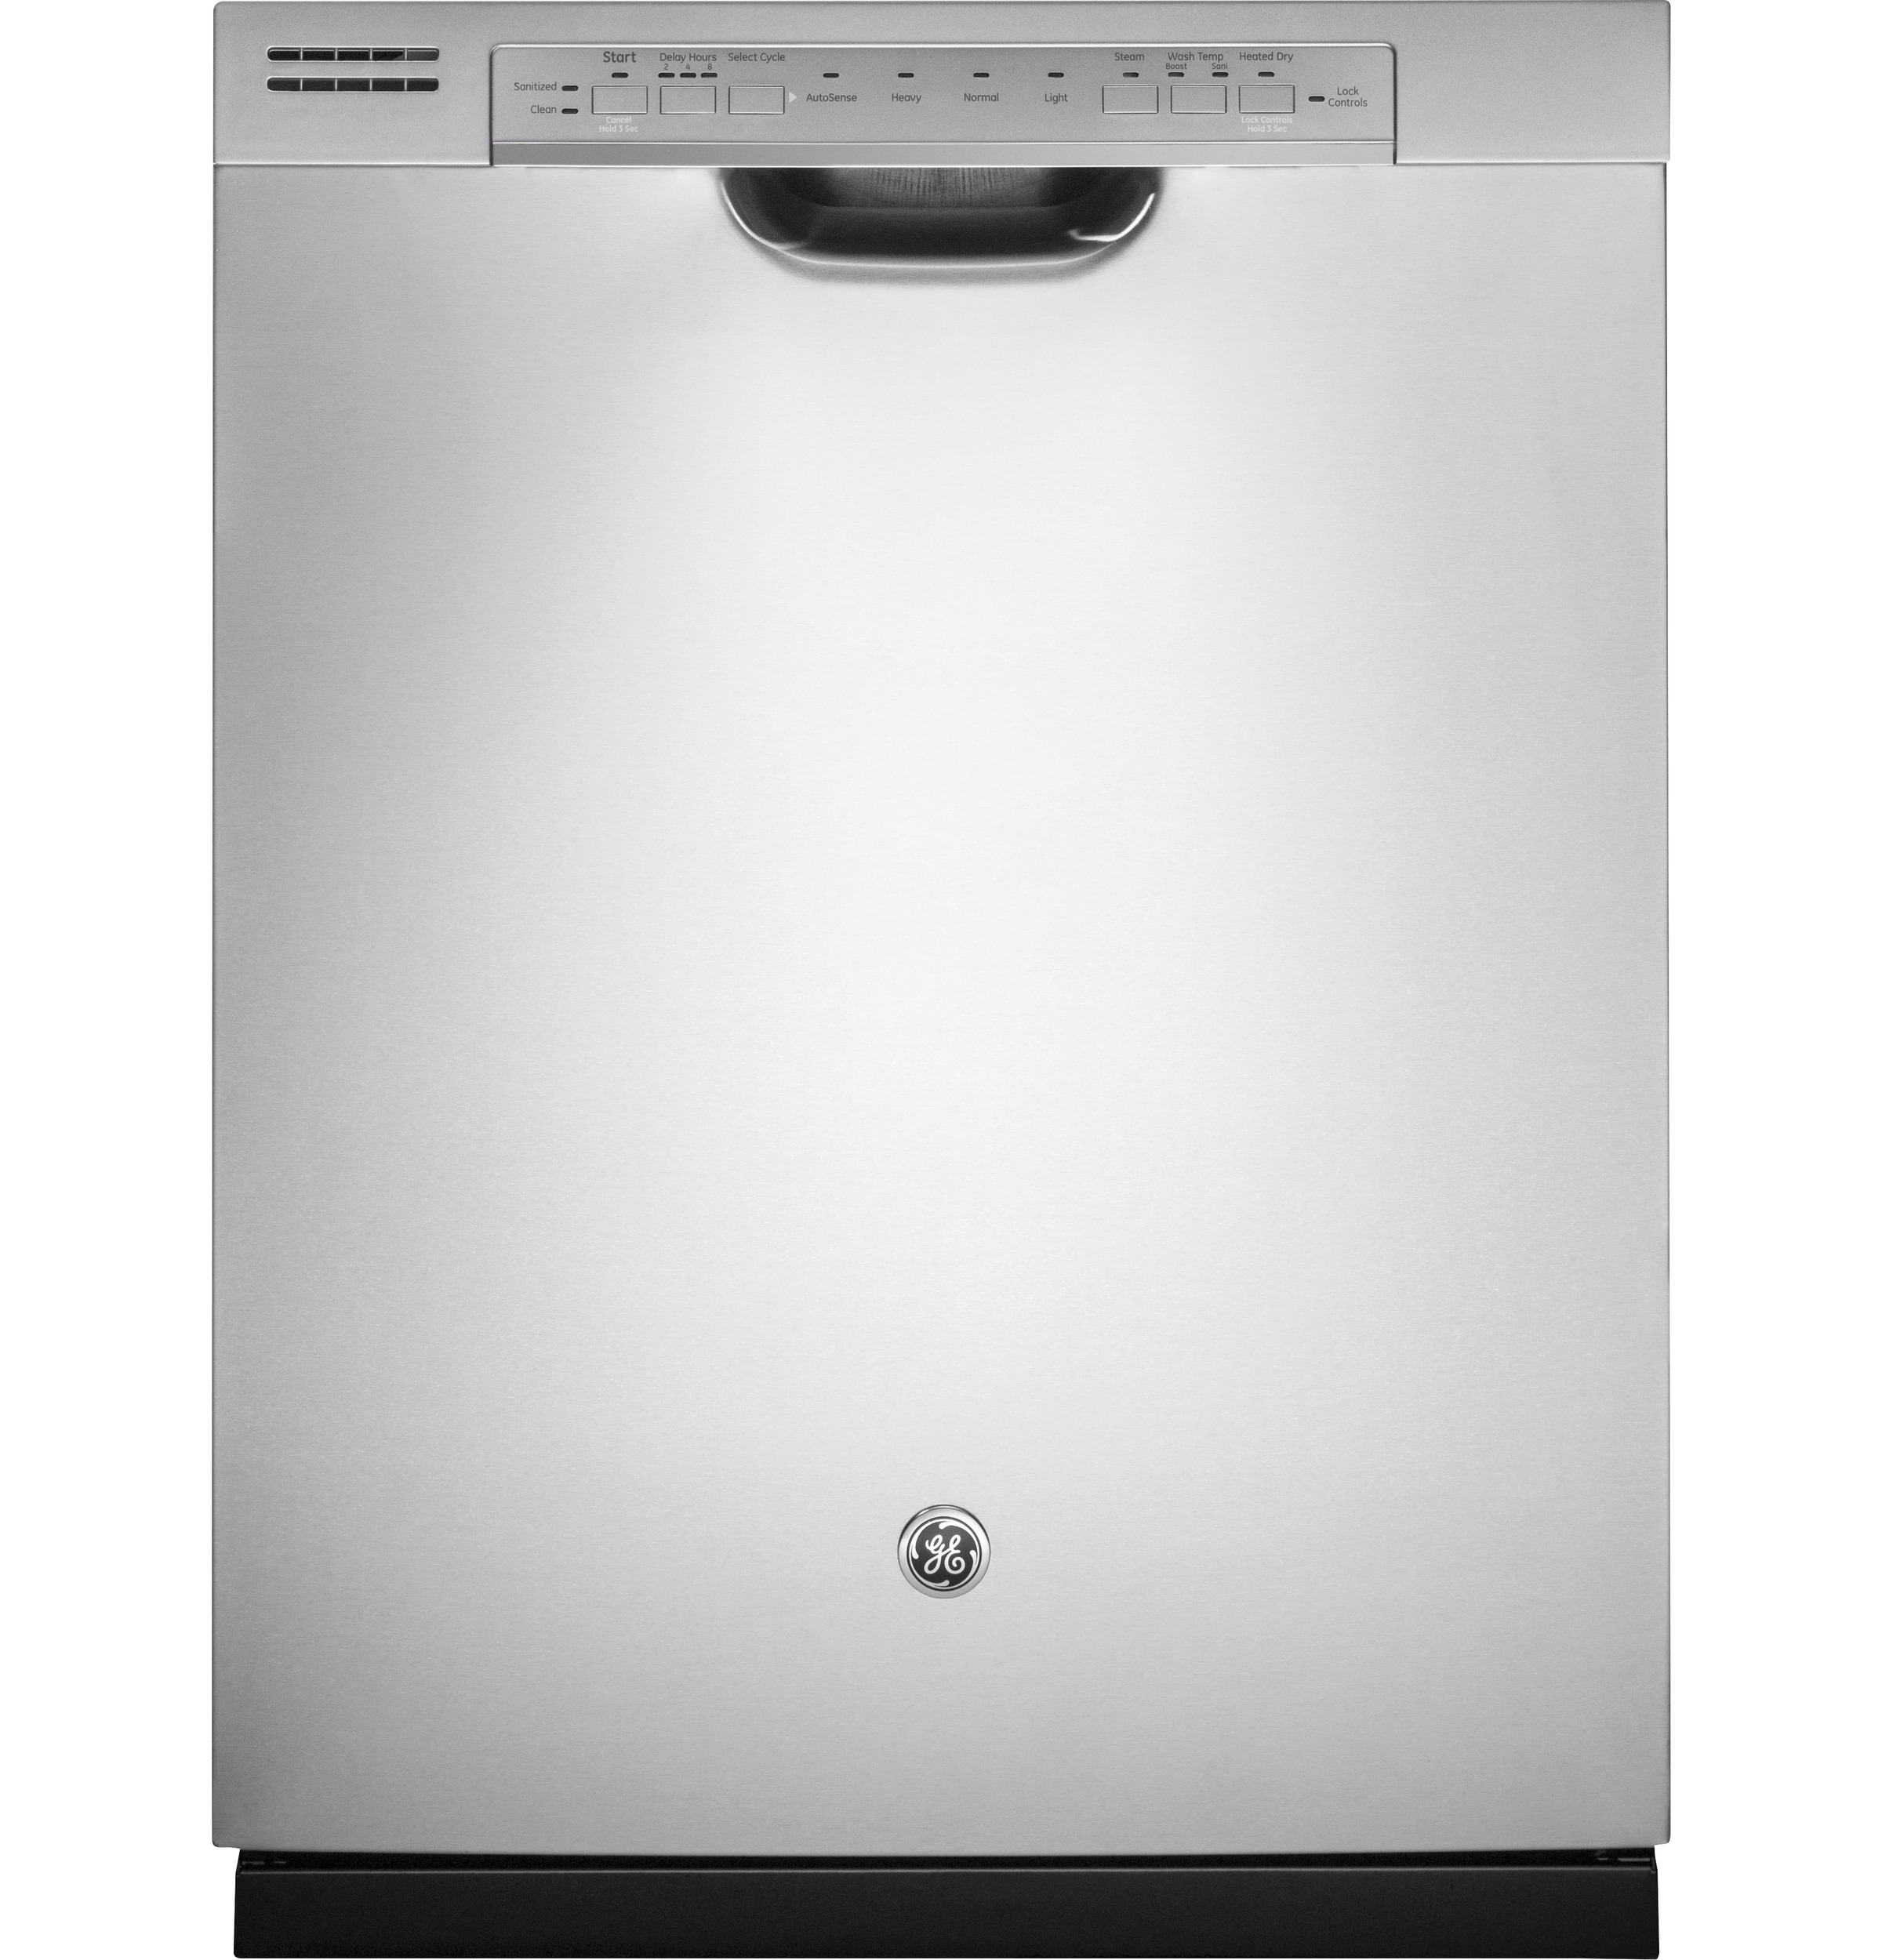 maytag quiet series 100 dishwashers manual